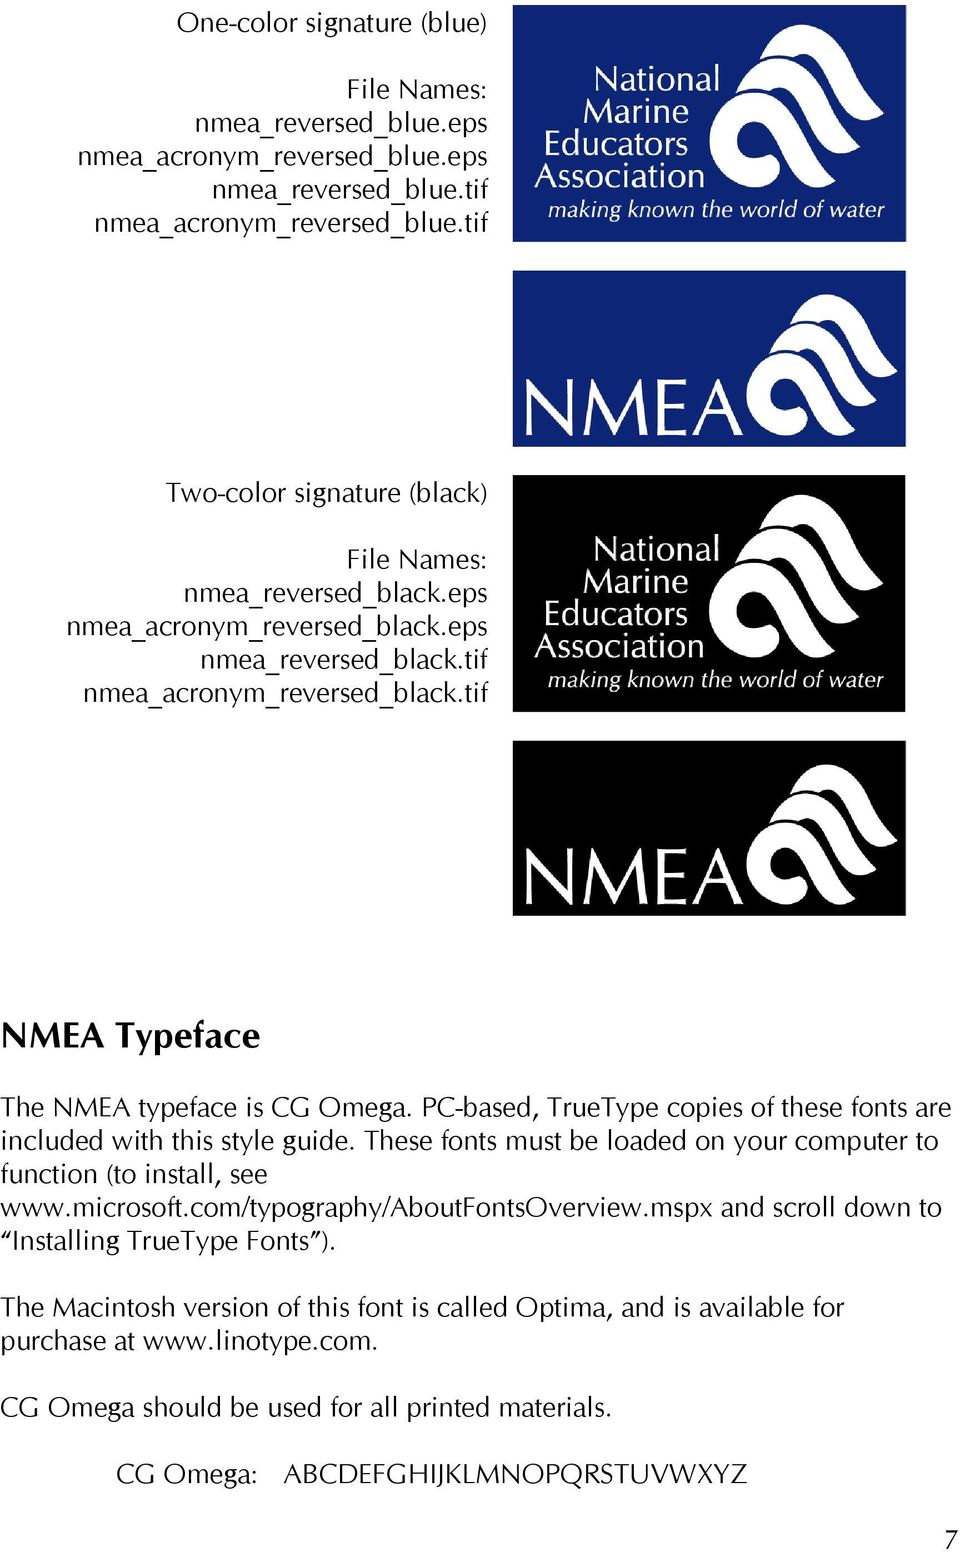 General Rules for Usage of NMEA logo - PDF